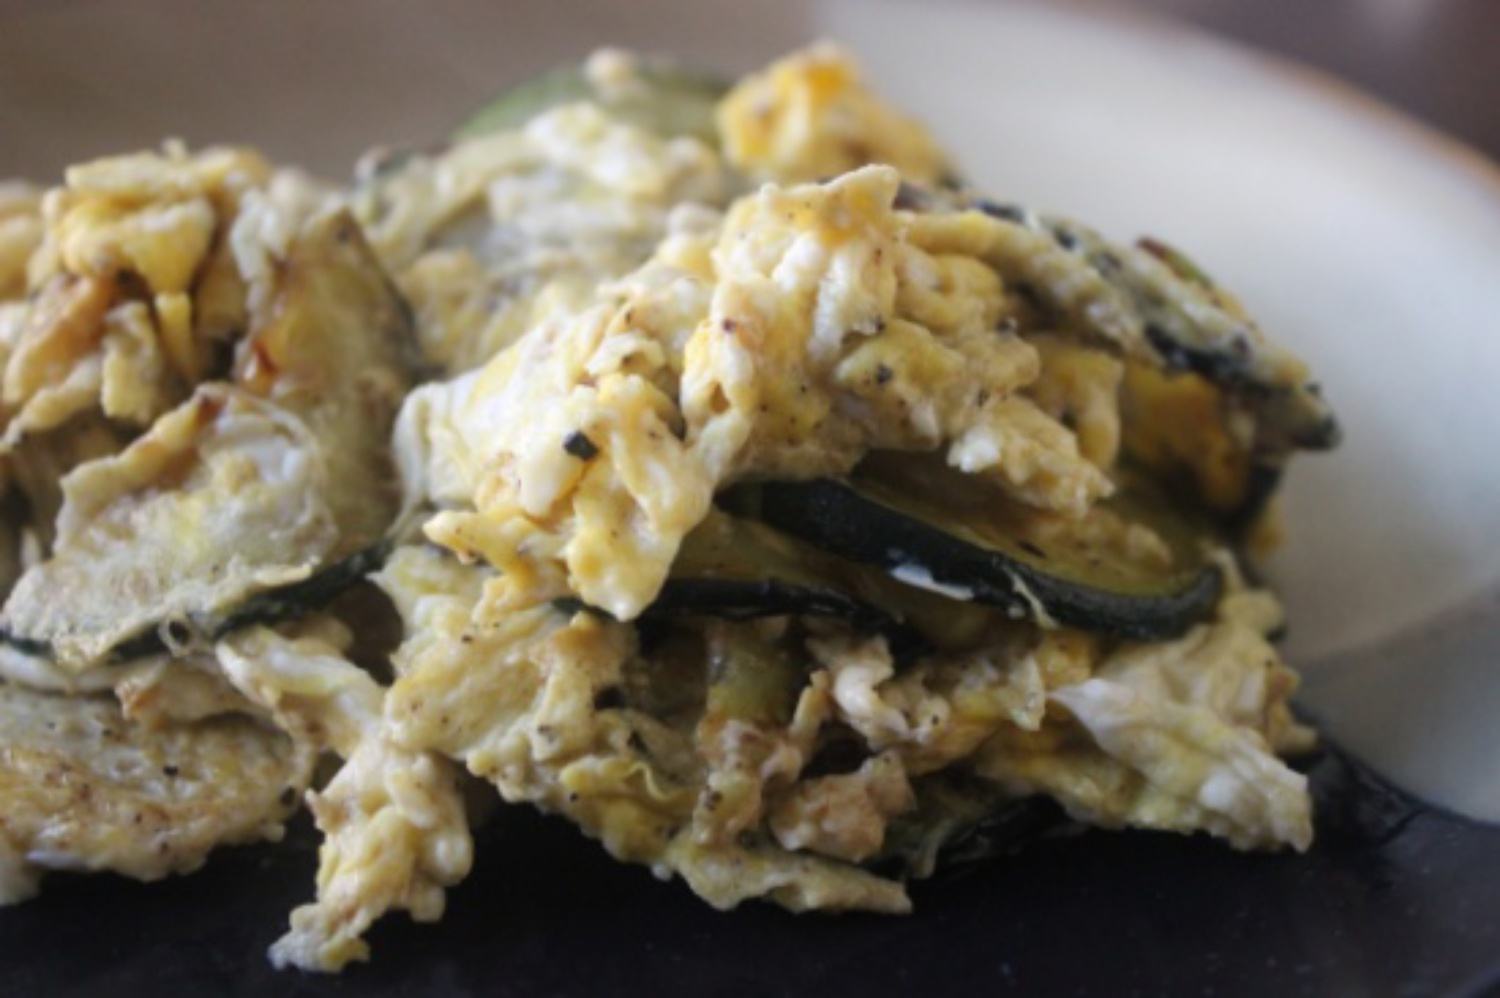 Zucchini and Eggs mommyluvs2cook